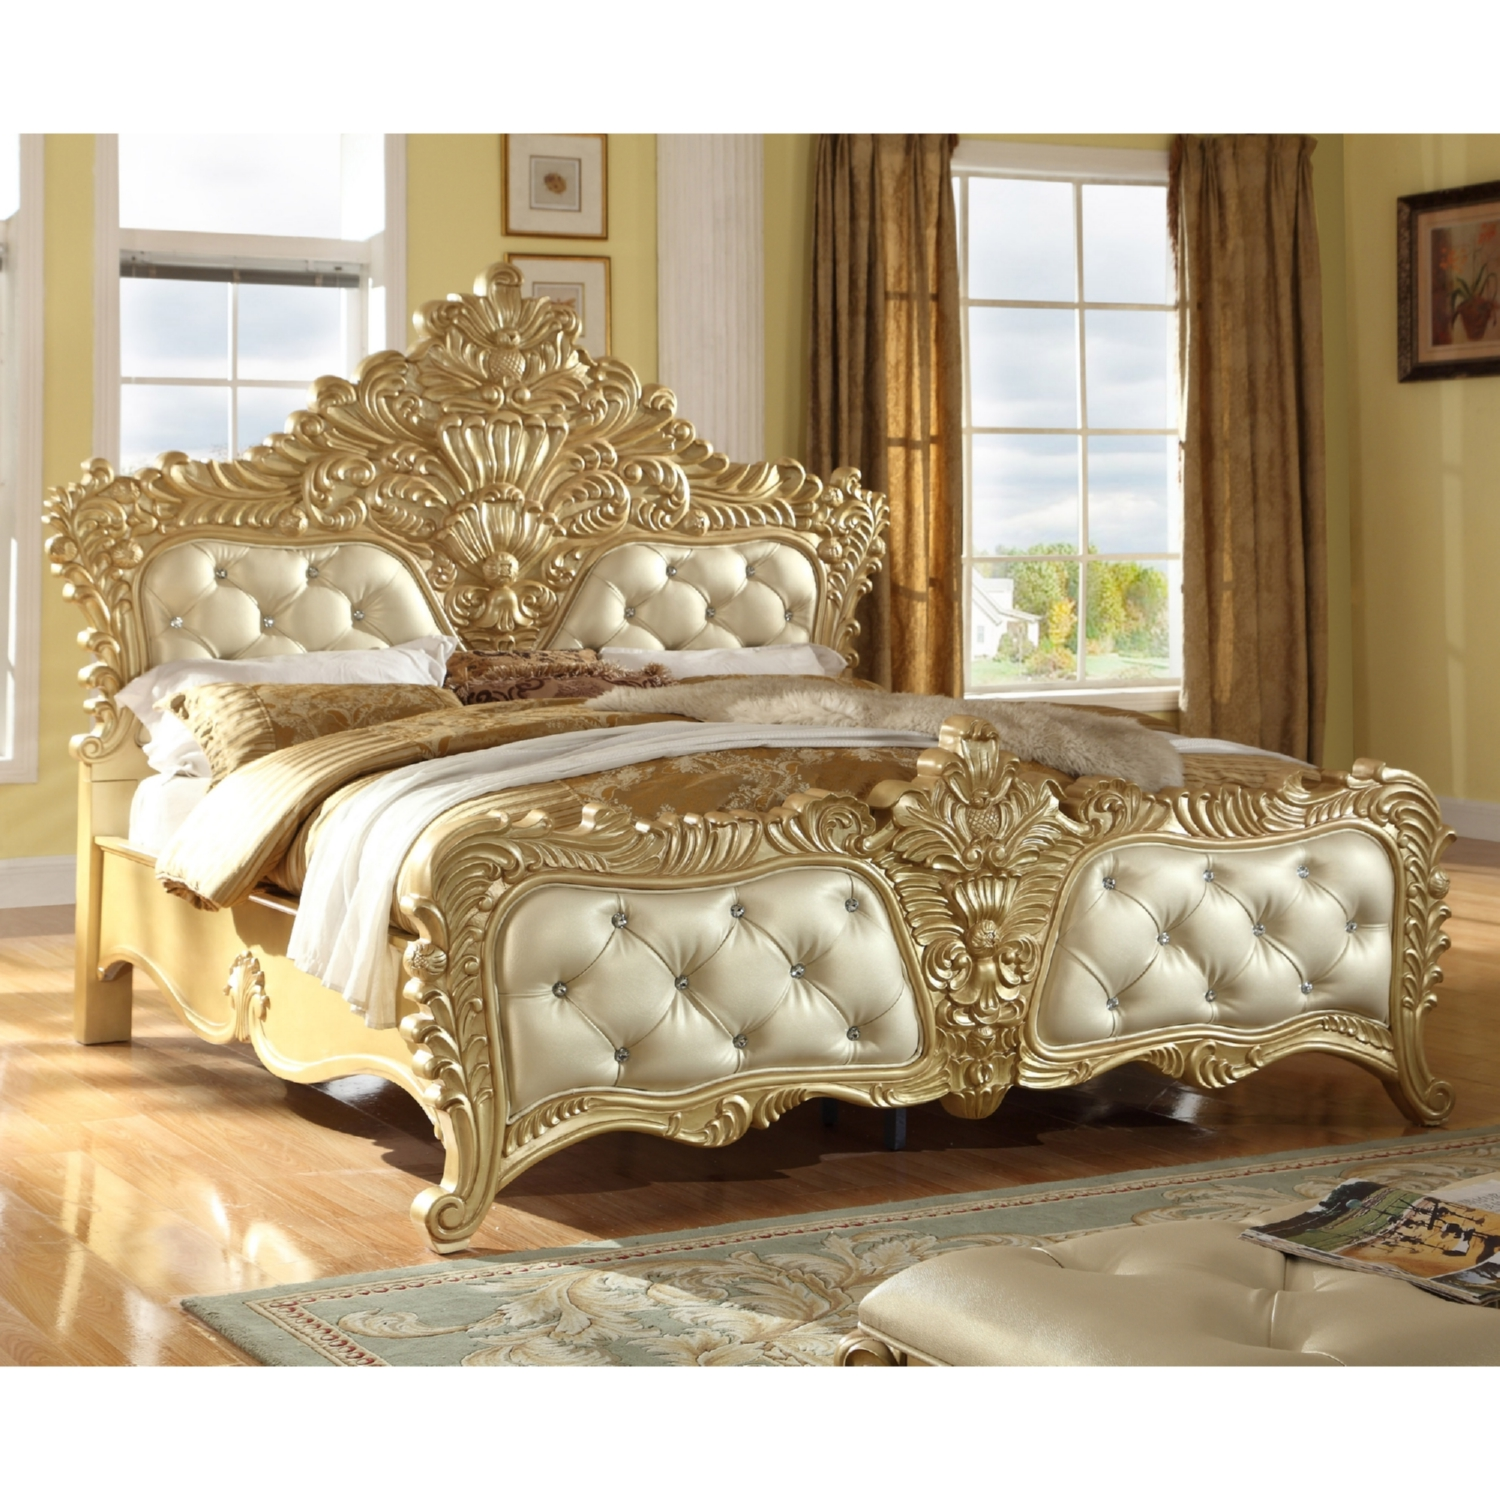 Meridian Furniture Zelda K Zelda King Bed In Ornate Rich Gold Silver W Crystal Tufted